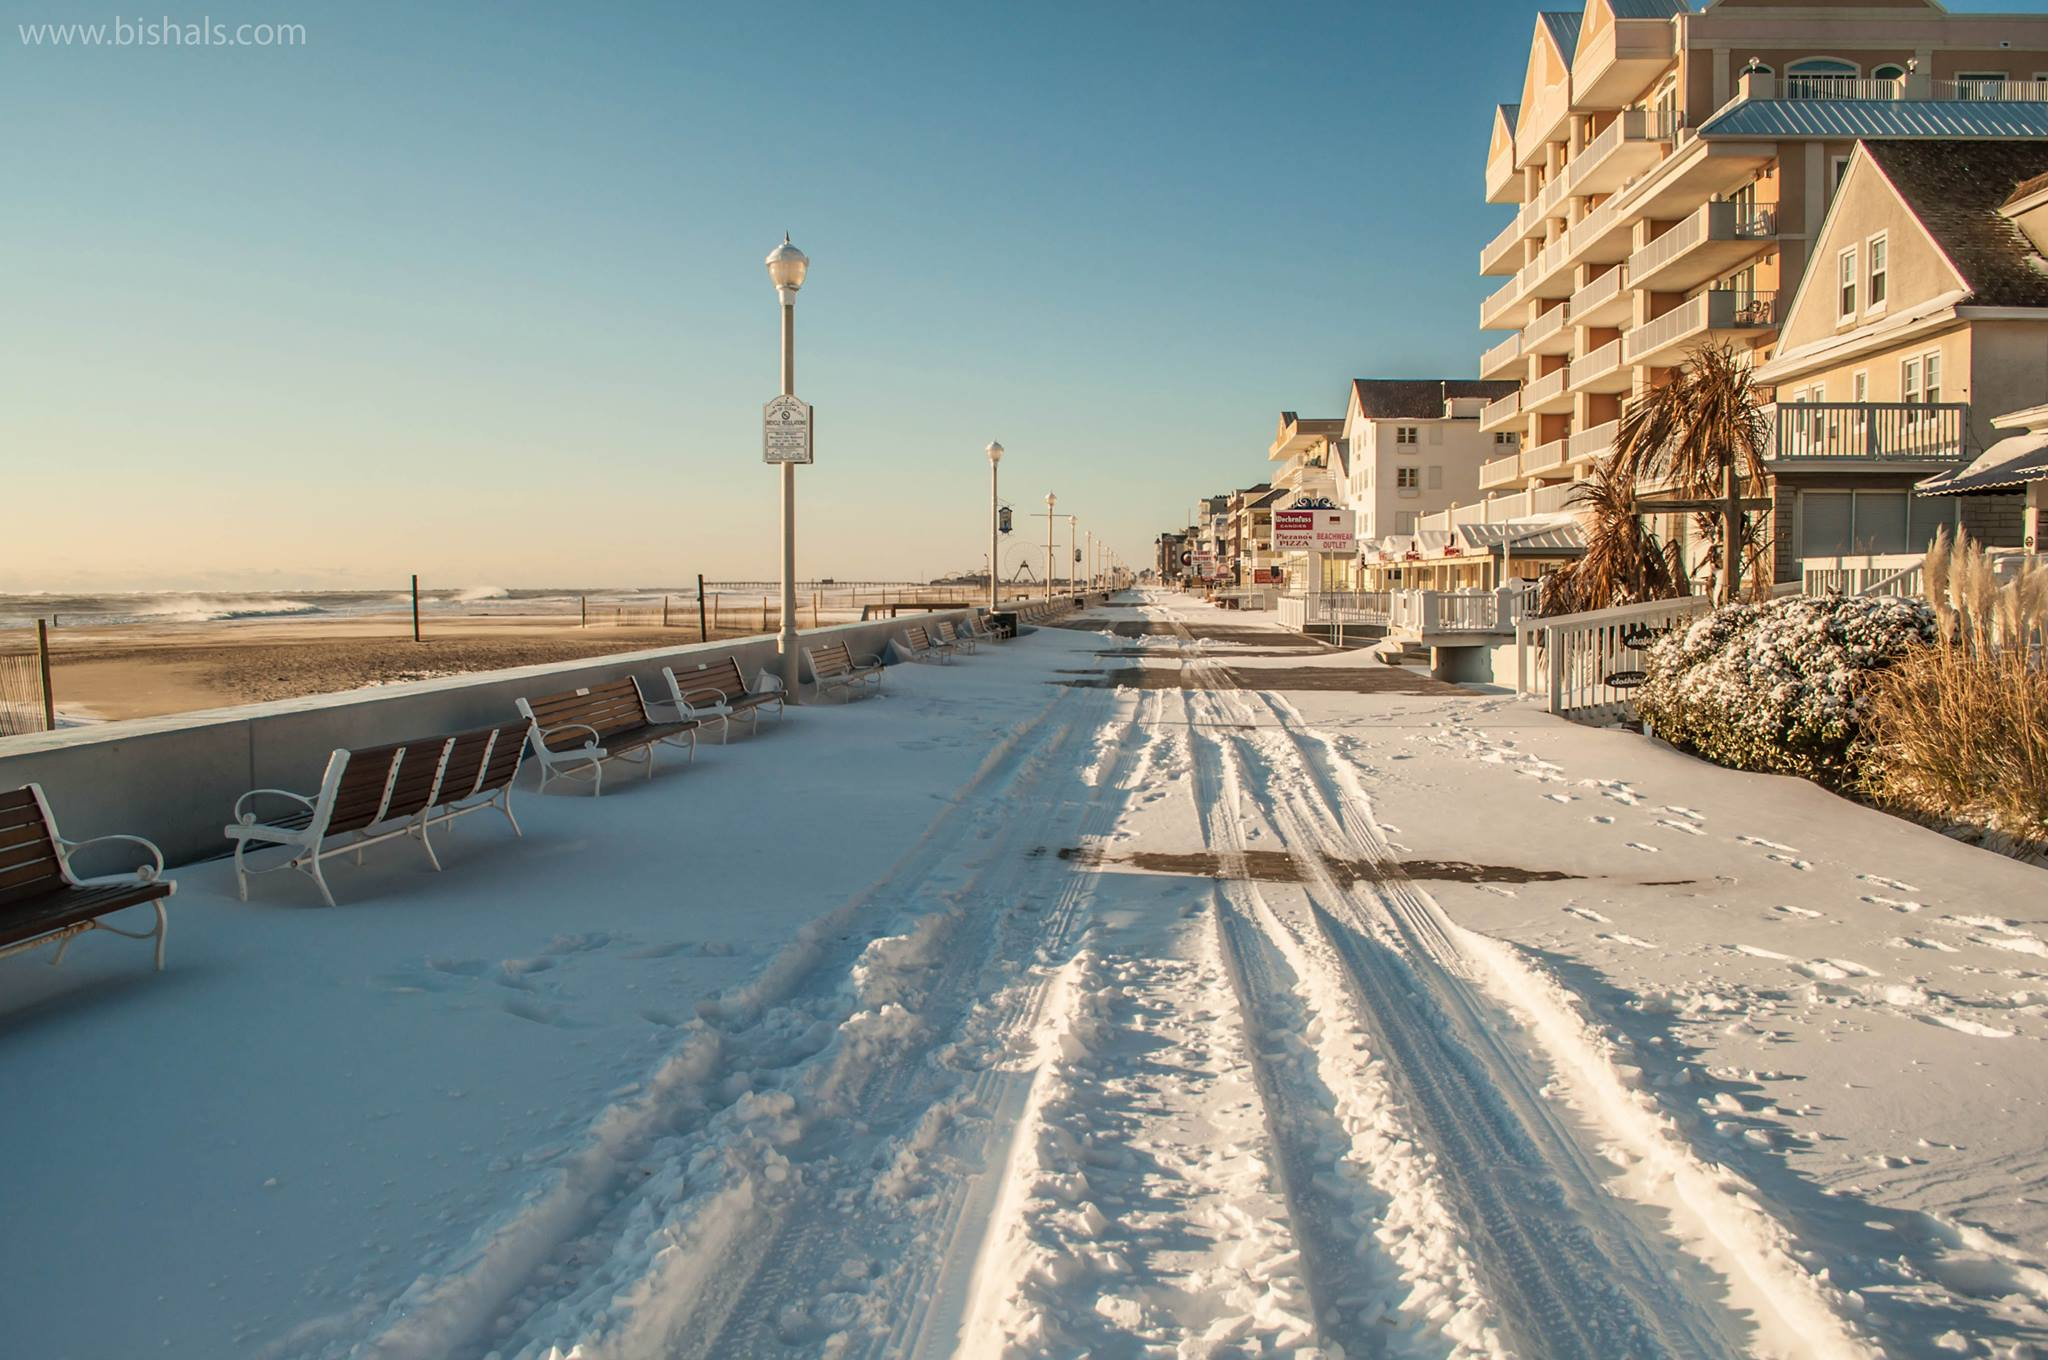 The scene on the Boardwalk this morning near 8th Street. Photo by Bishal Poudel